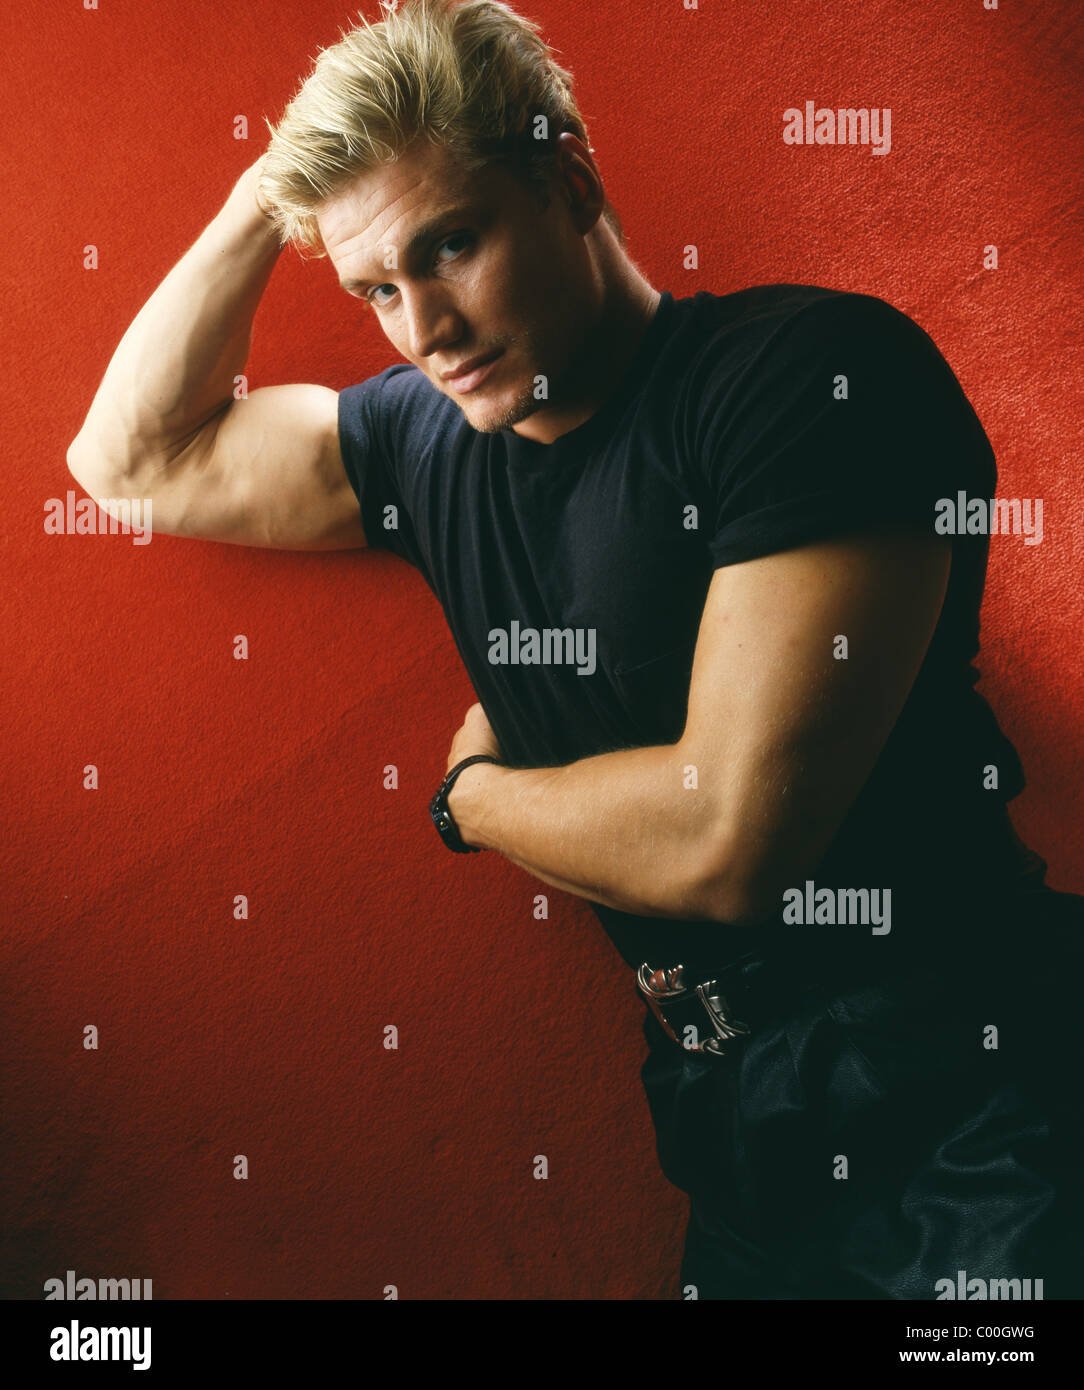 Tough guy actor and martial arts expert Dolph Lundgren - Stock Image